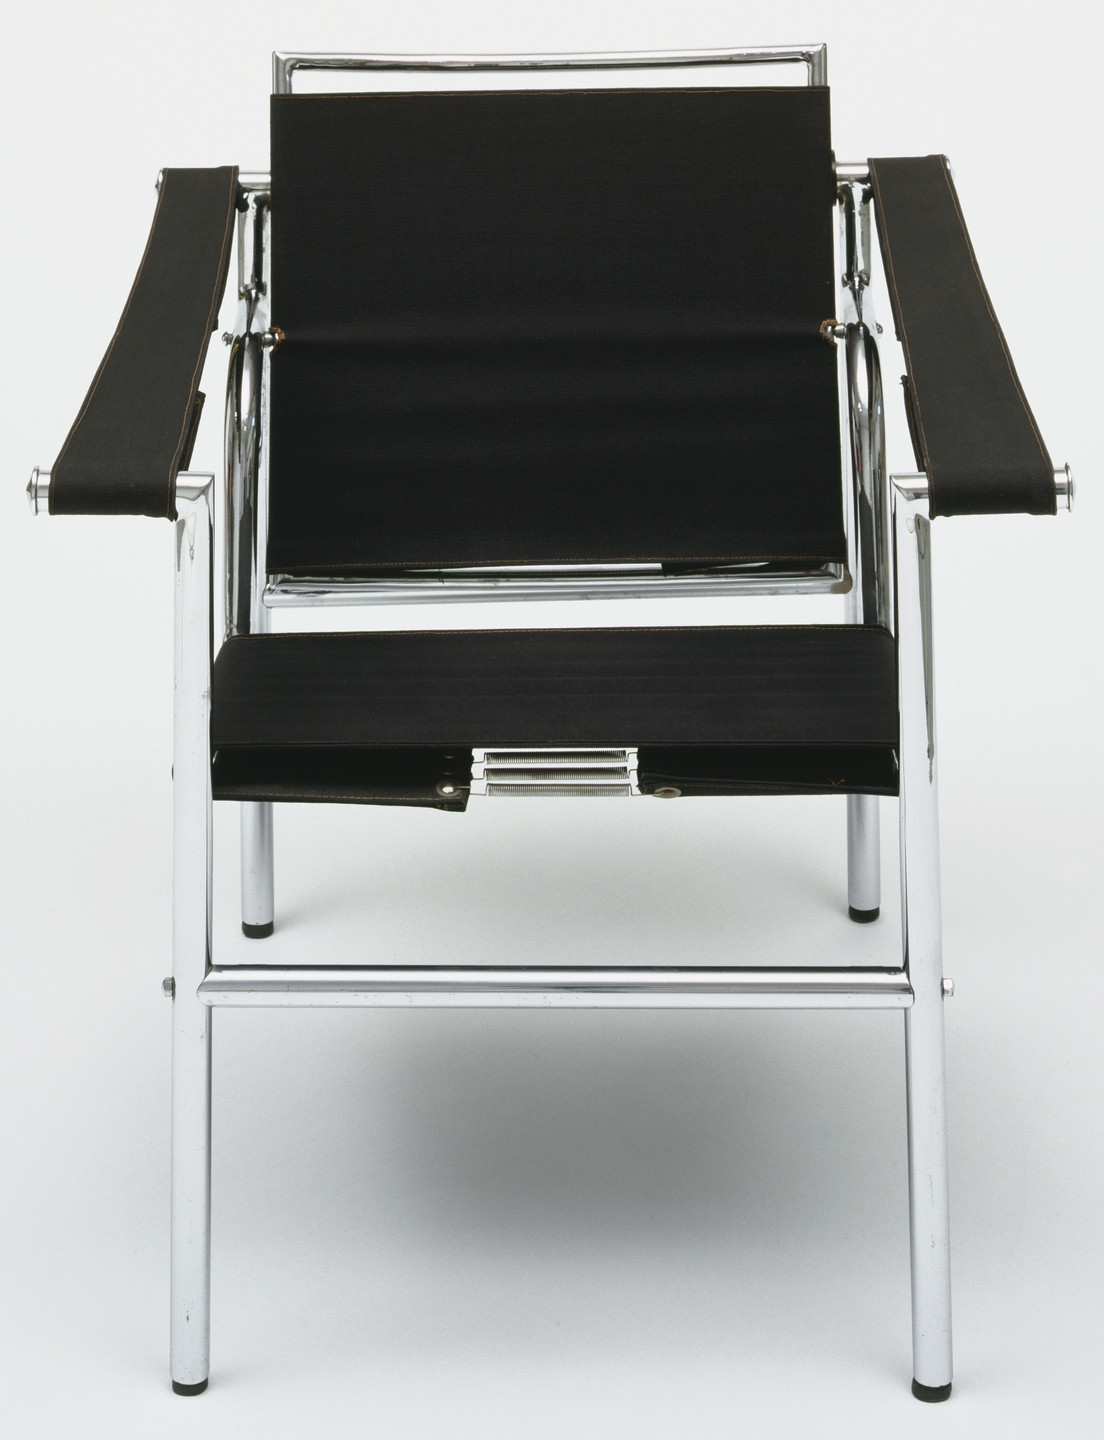 Le Corbusier (Charles-Édouard Jeanneret), Pierre Jeanneret, Charlotte Perriand. Armchair with a Tilting Back (Siège à Dossier Basculant). 1928